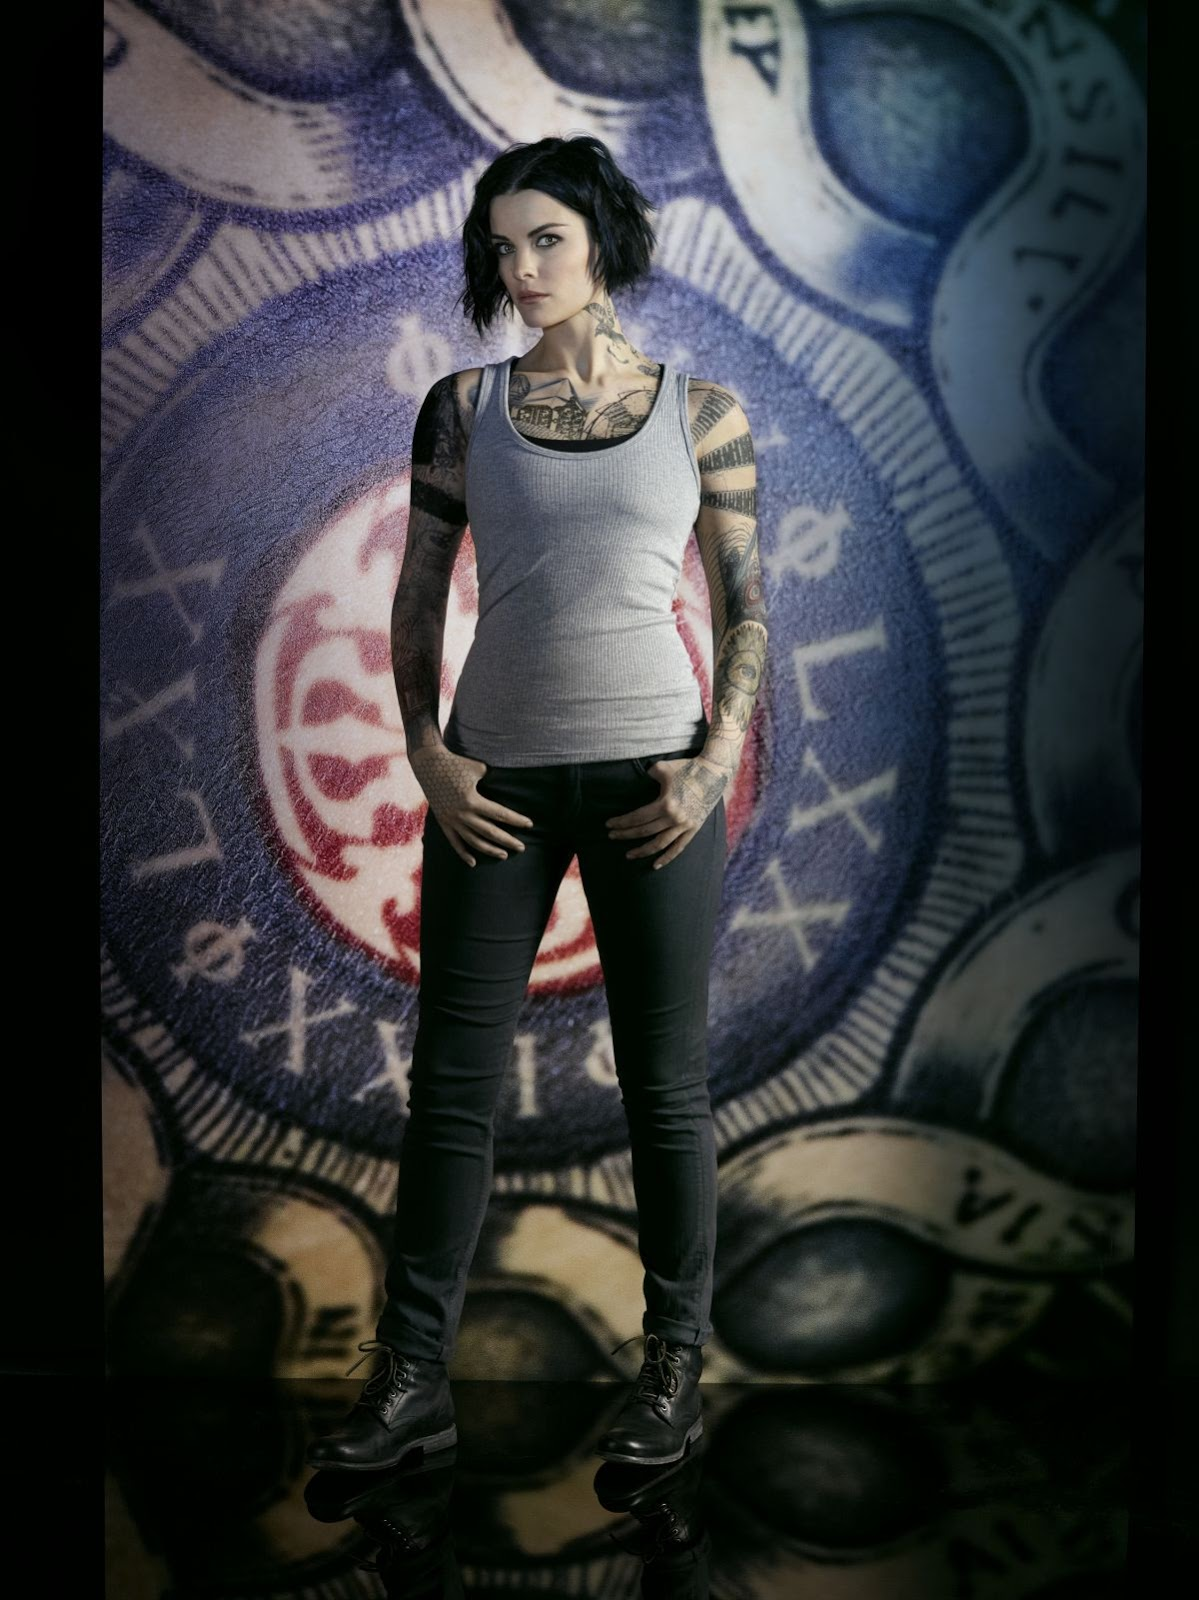 HQ Hot & Sexy Wallpapers of Marvel Comics Actress Jaimie Alexander Blindspot Season 2 Promos